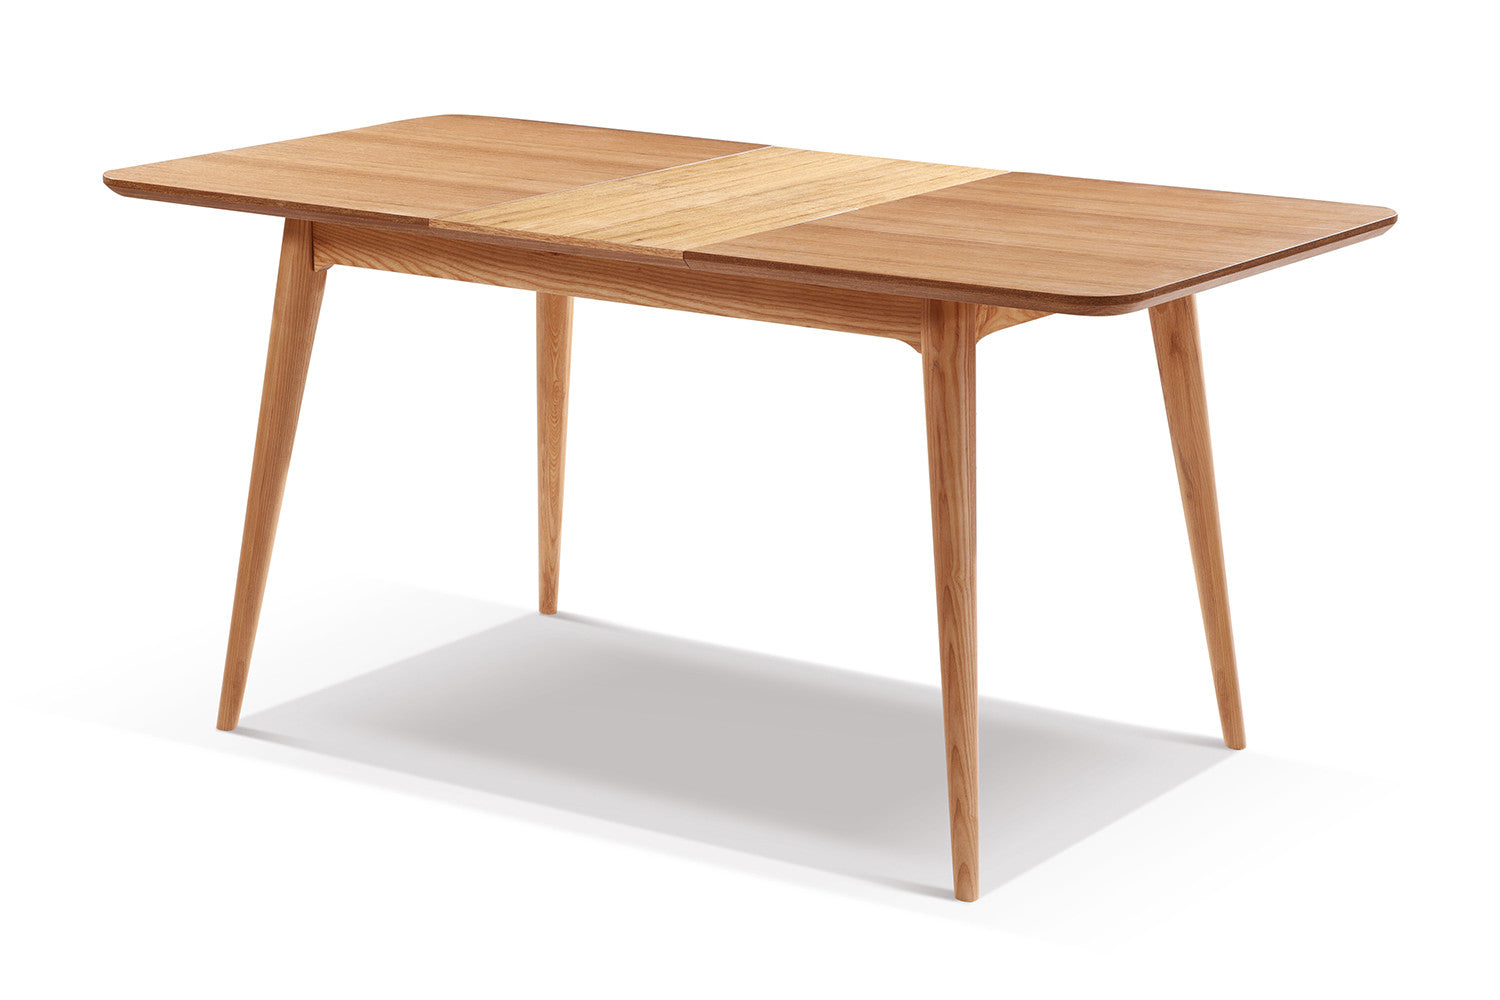 Table de salle manger extensible en bois adda dewarens for Table a manger en bois moderne